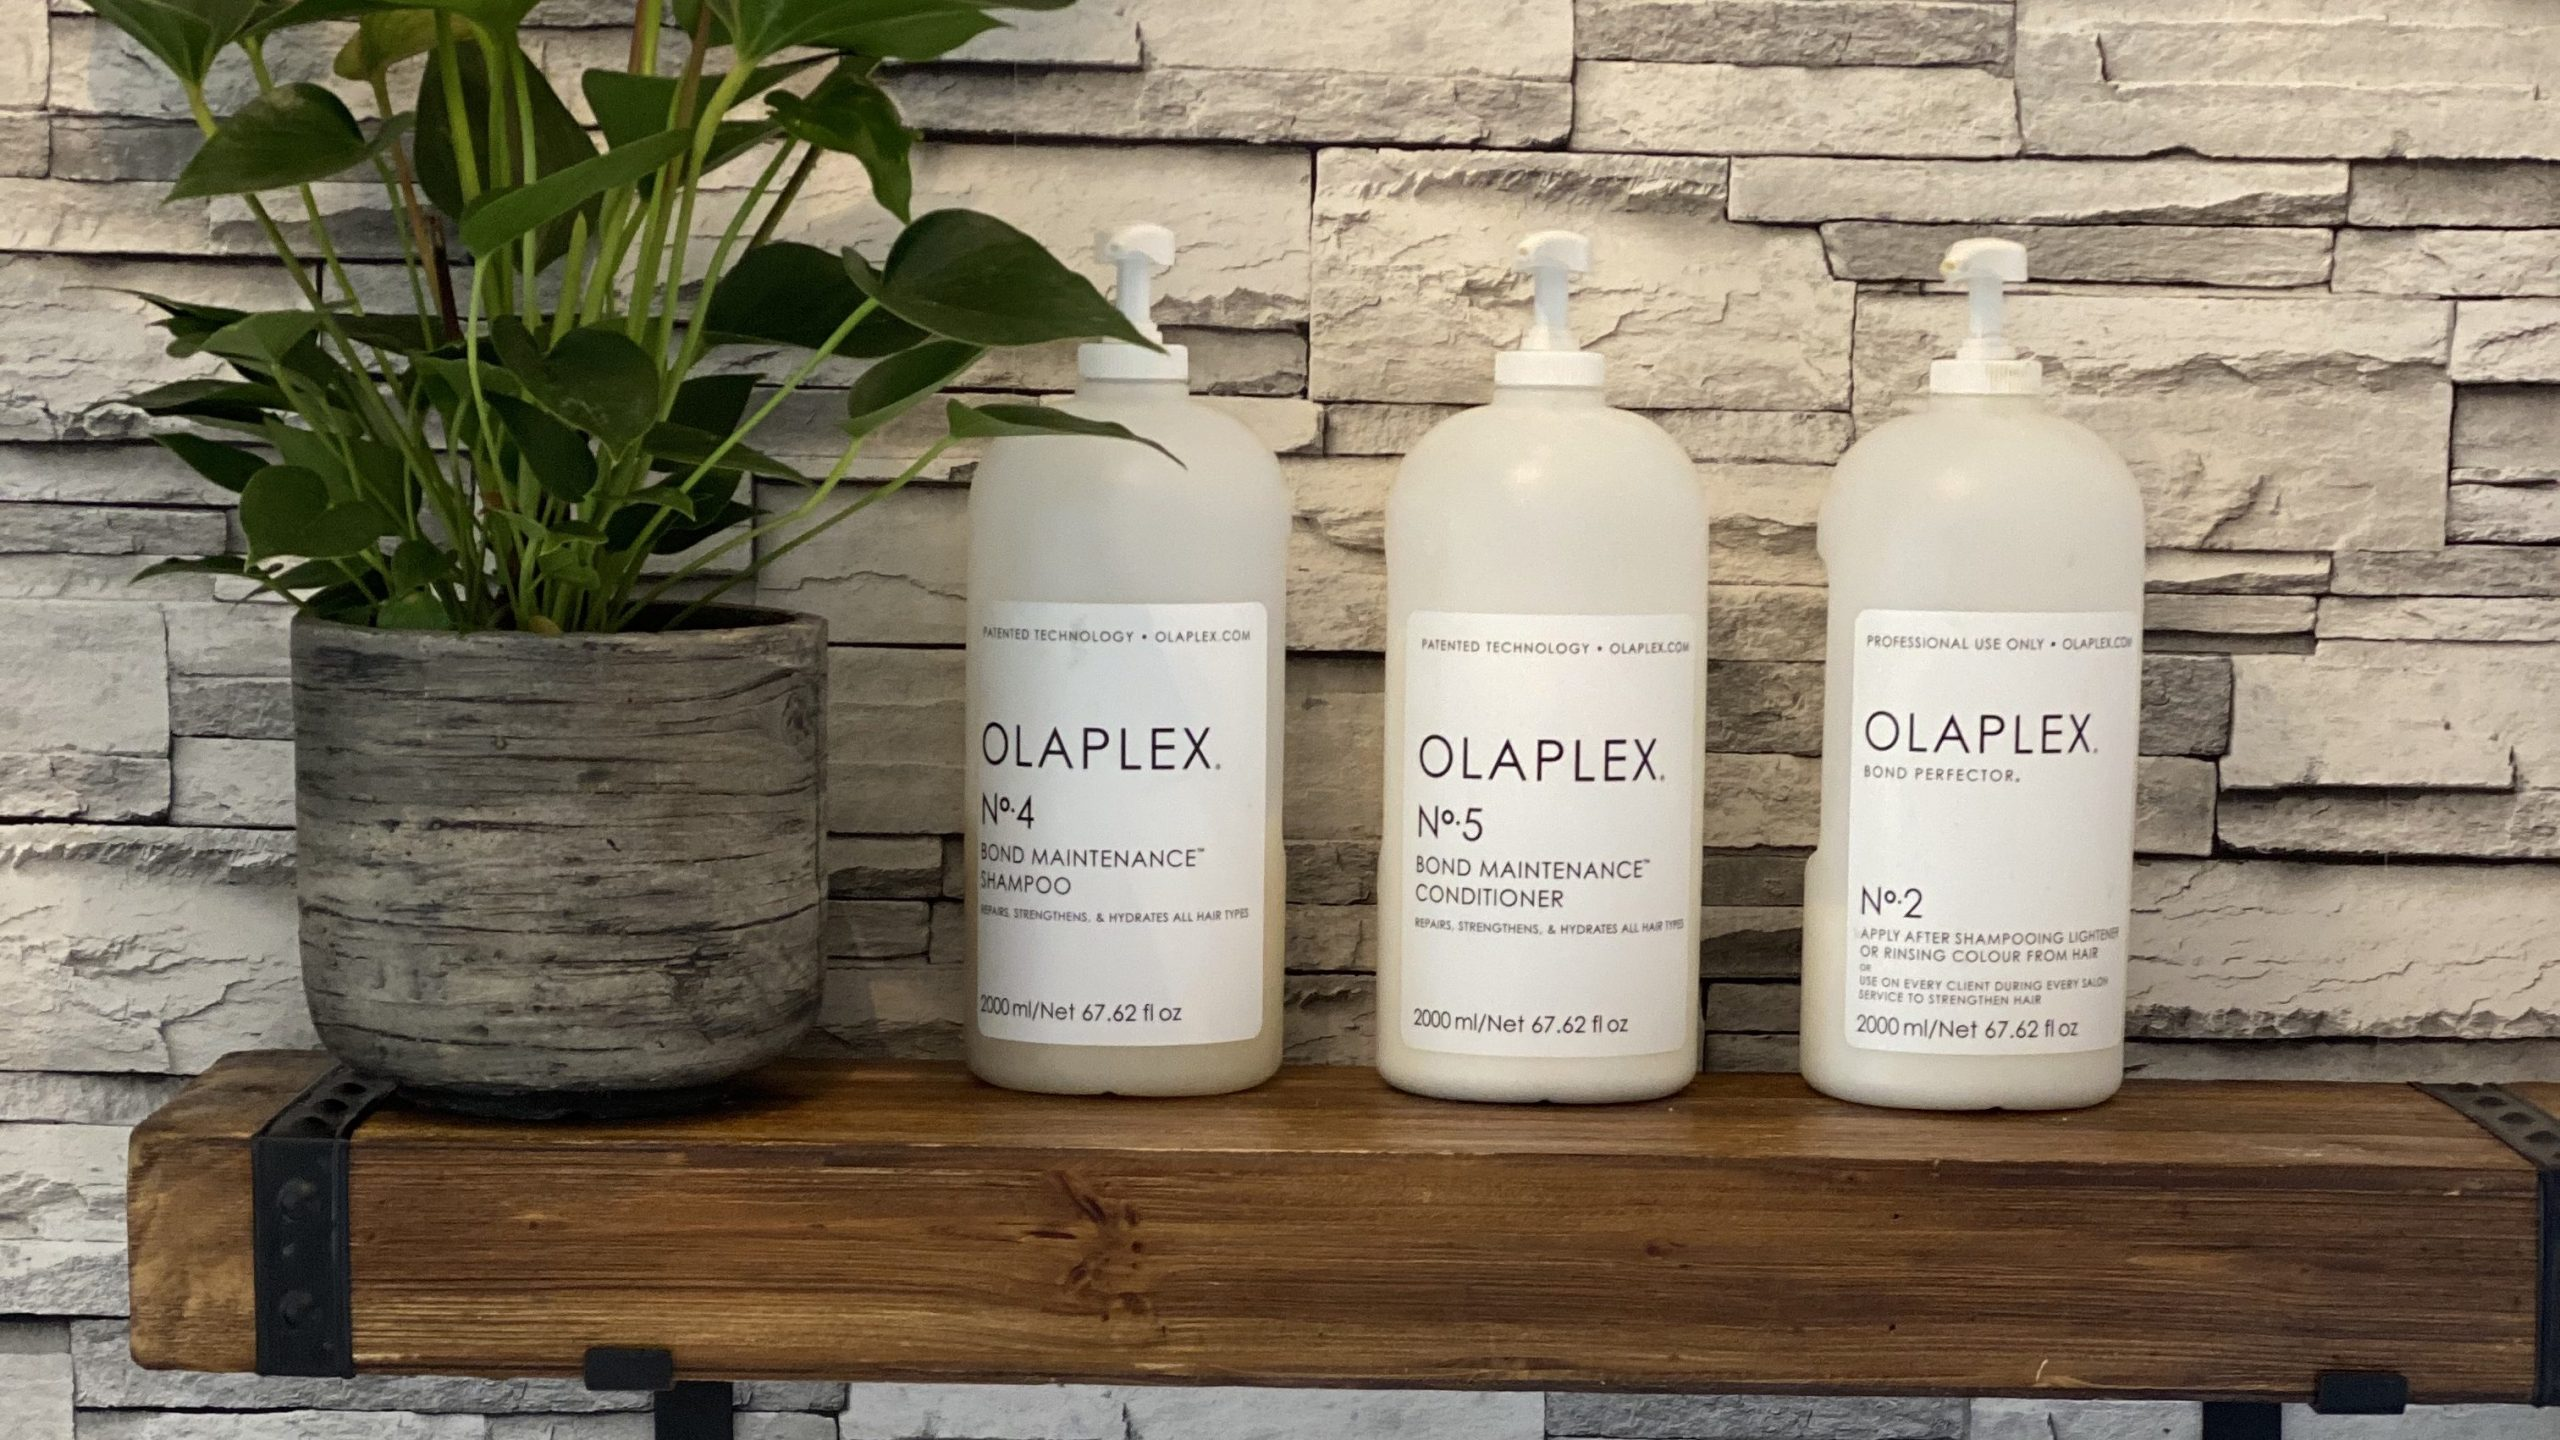 Olaplex at The Gardens Salon Biddulph